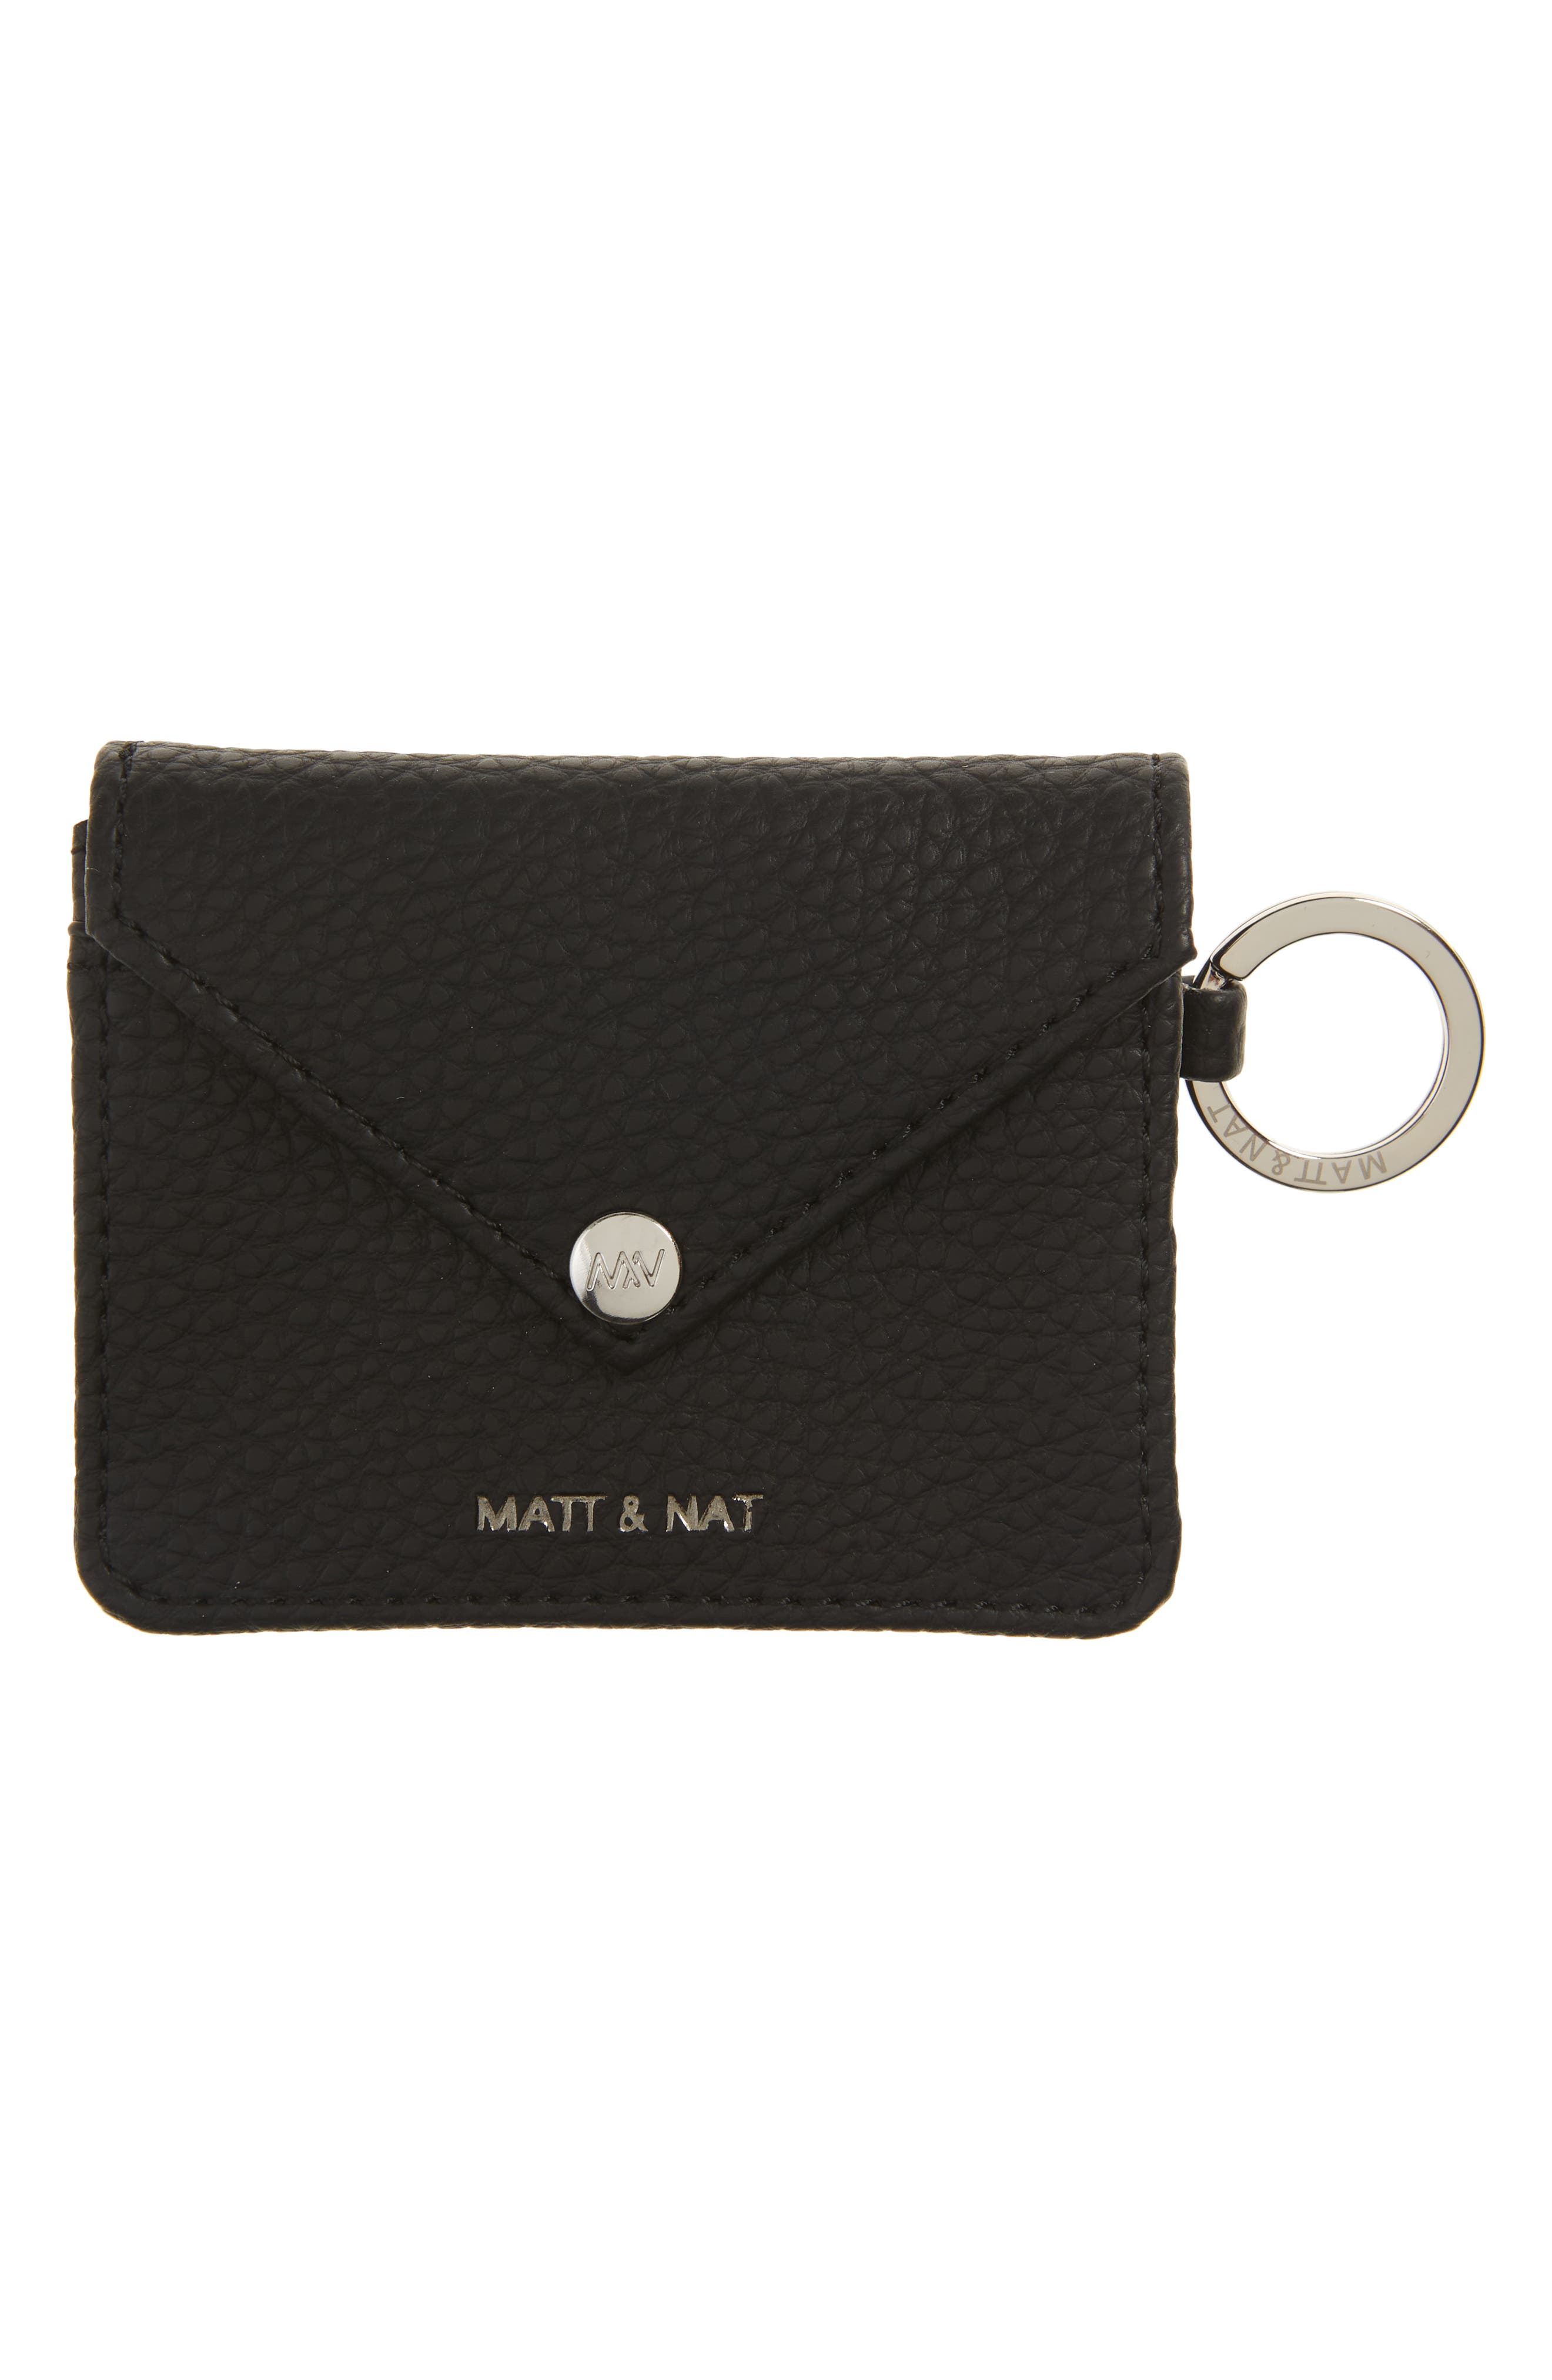 Ozma Vegan Leather Coin Purse With Key Ring